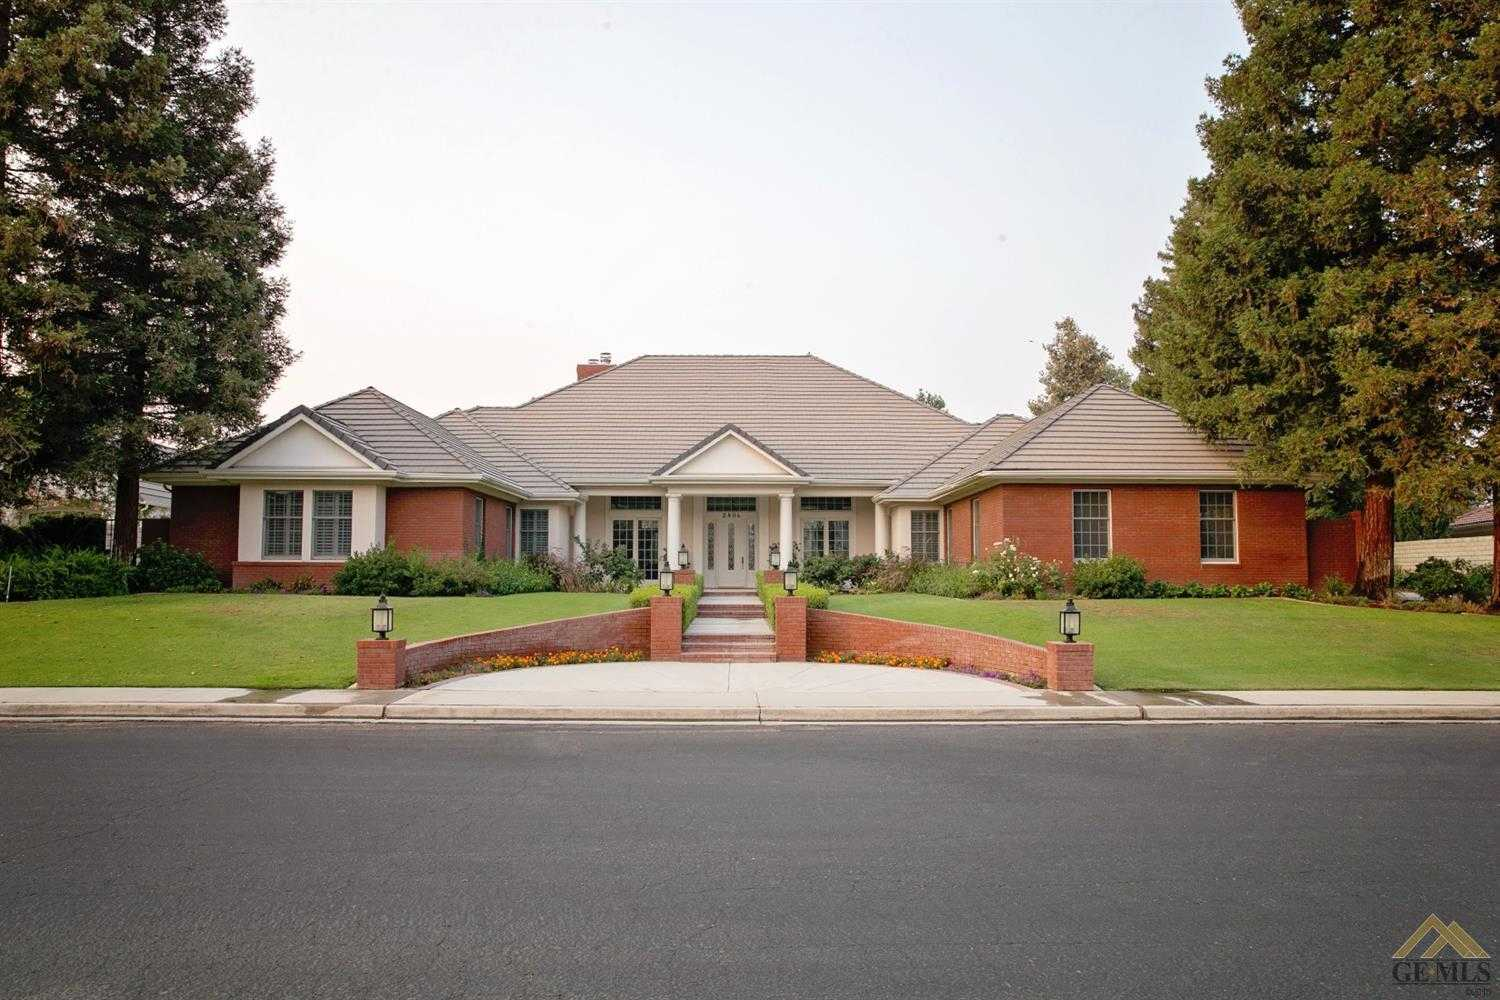 Duplex Home For Sale In Bakersfield Ca